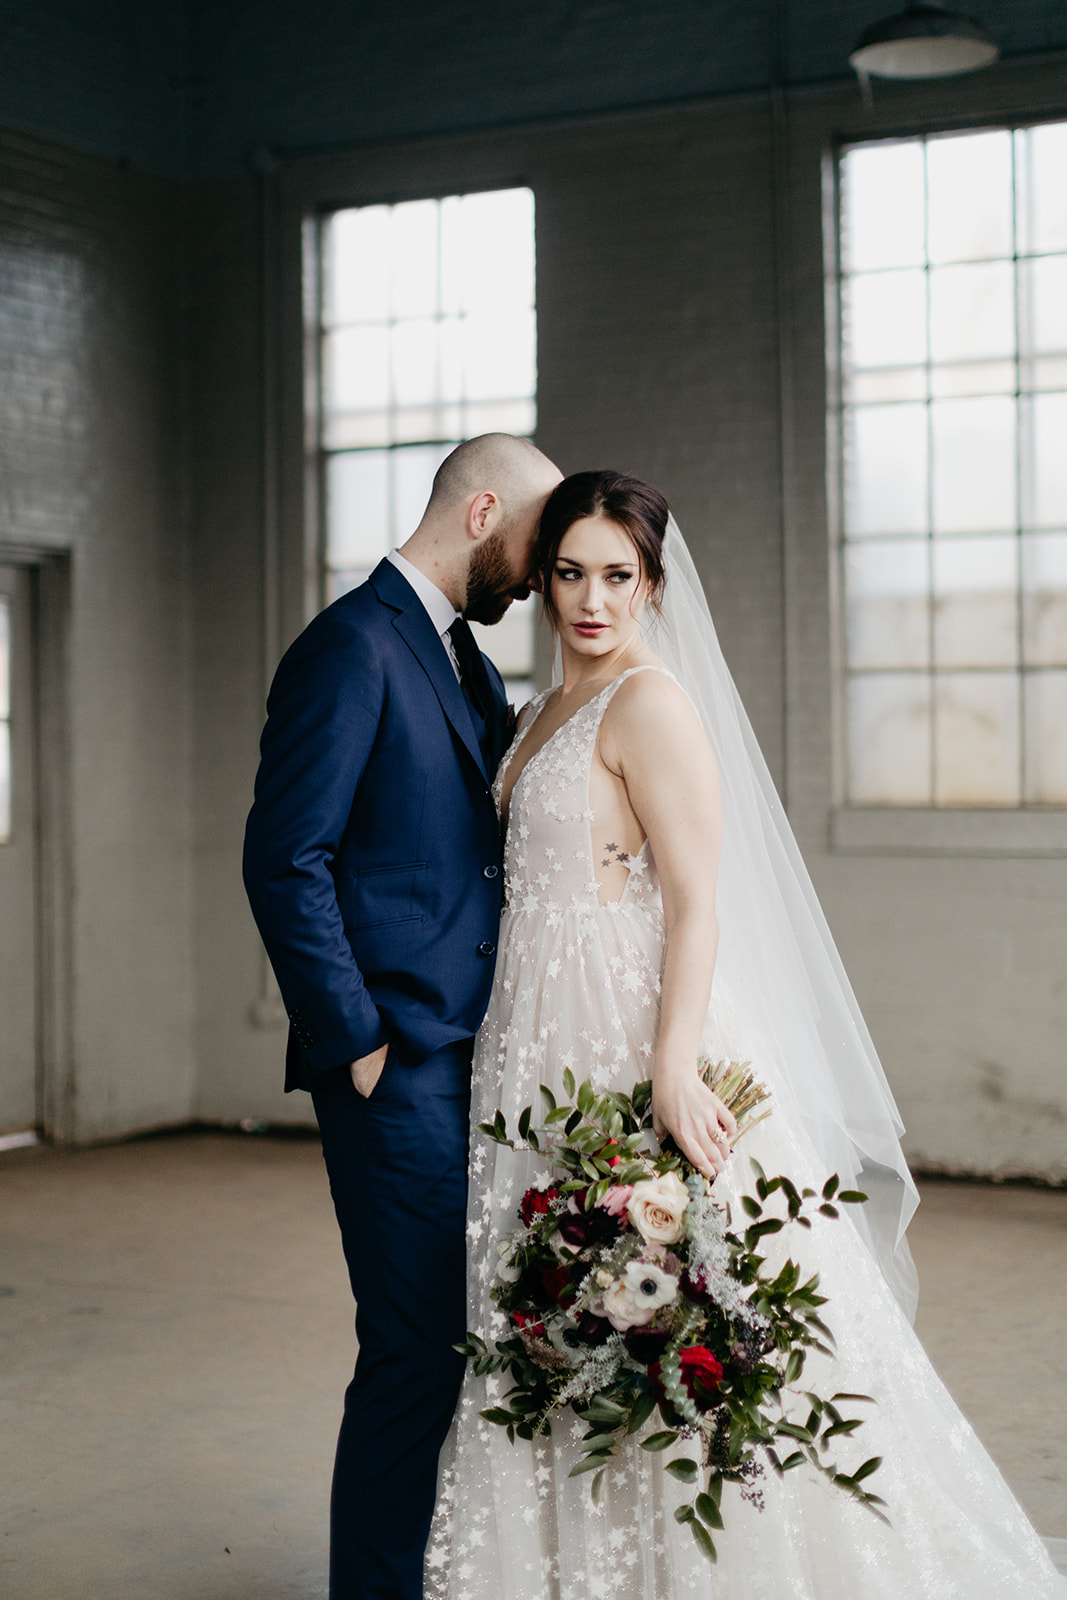 Starry wedding dress with an untamed, airy bridal bouquet with garden roses, ranunculus, and anemones in hues of burgundy and jewel tones. Wedding Floral Designer in Nashville, TN.